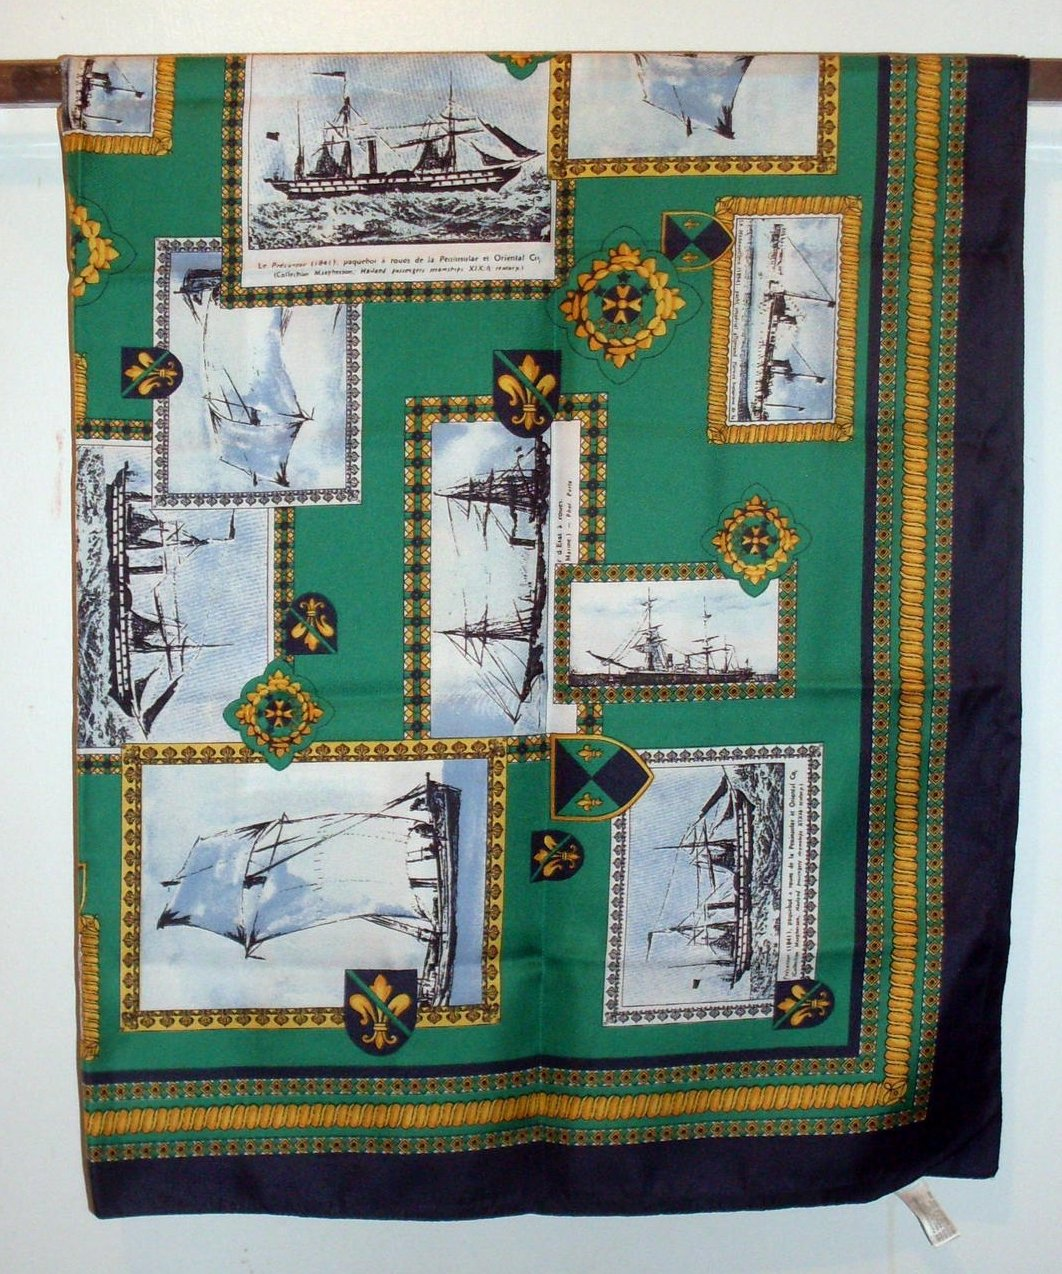 Symphony Tall Ships Silk Scarf Green Blue Gold 34 inch